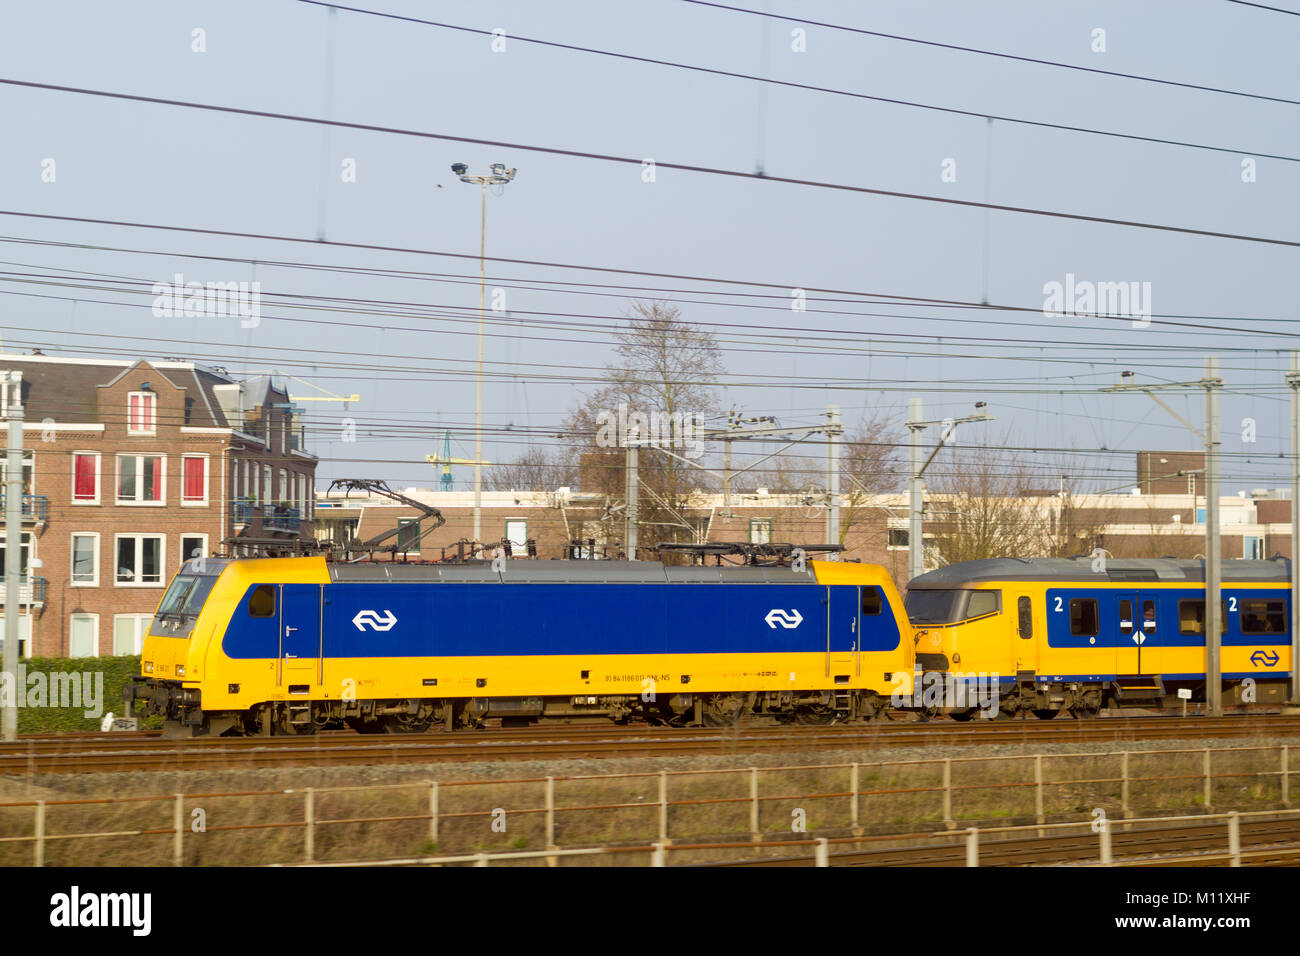 Amsterdam Centraal Station, the Netherlands - 28 March 2017: Dutch electric intercity direct train departing Amsterdam - Stock Image